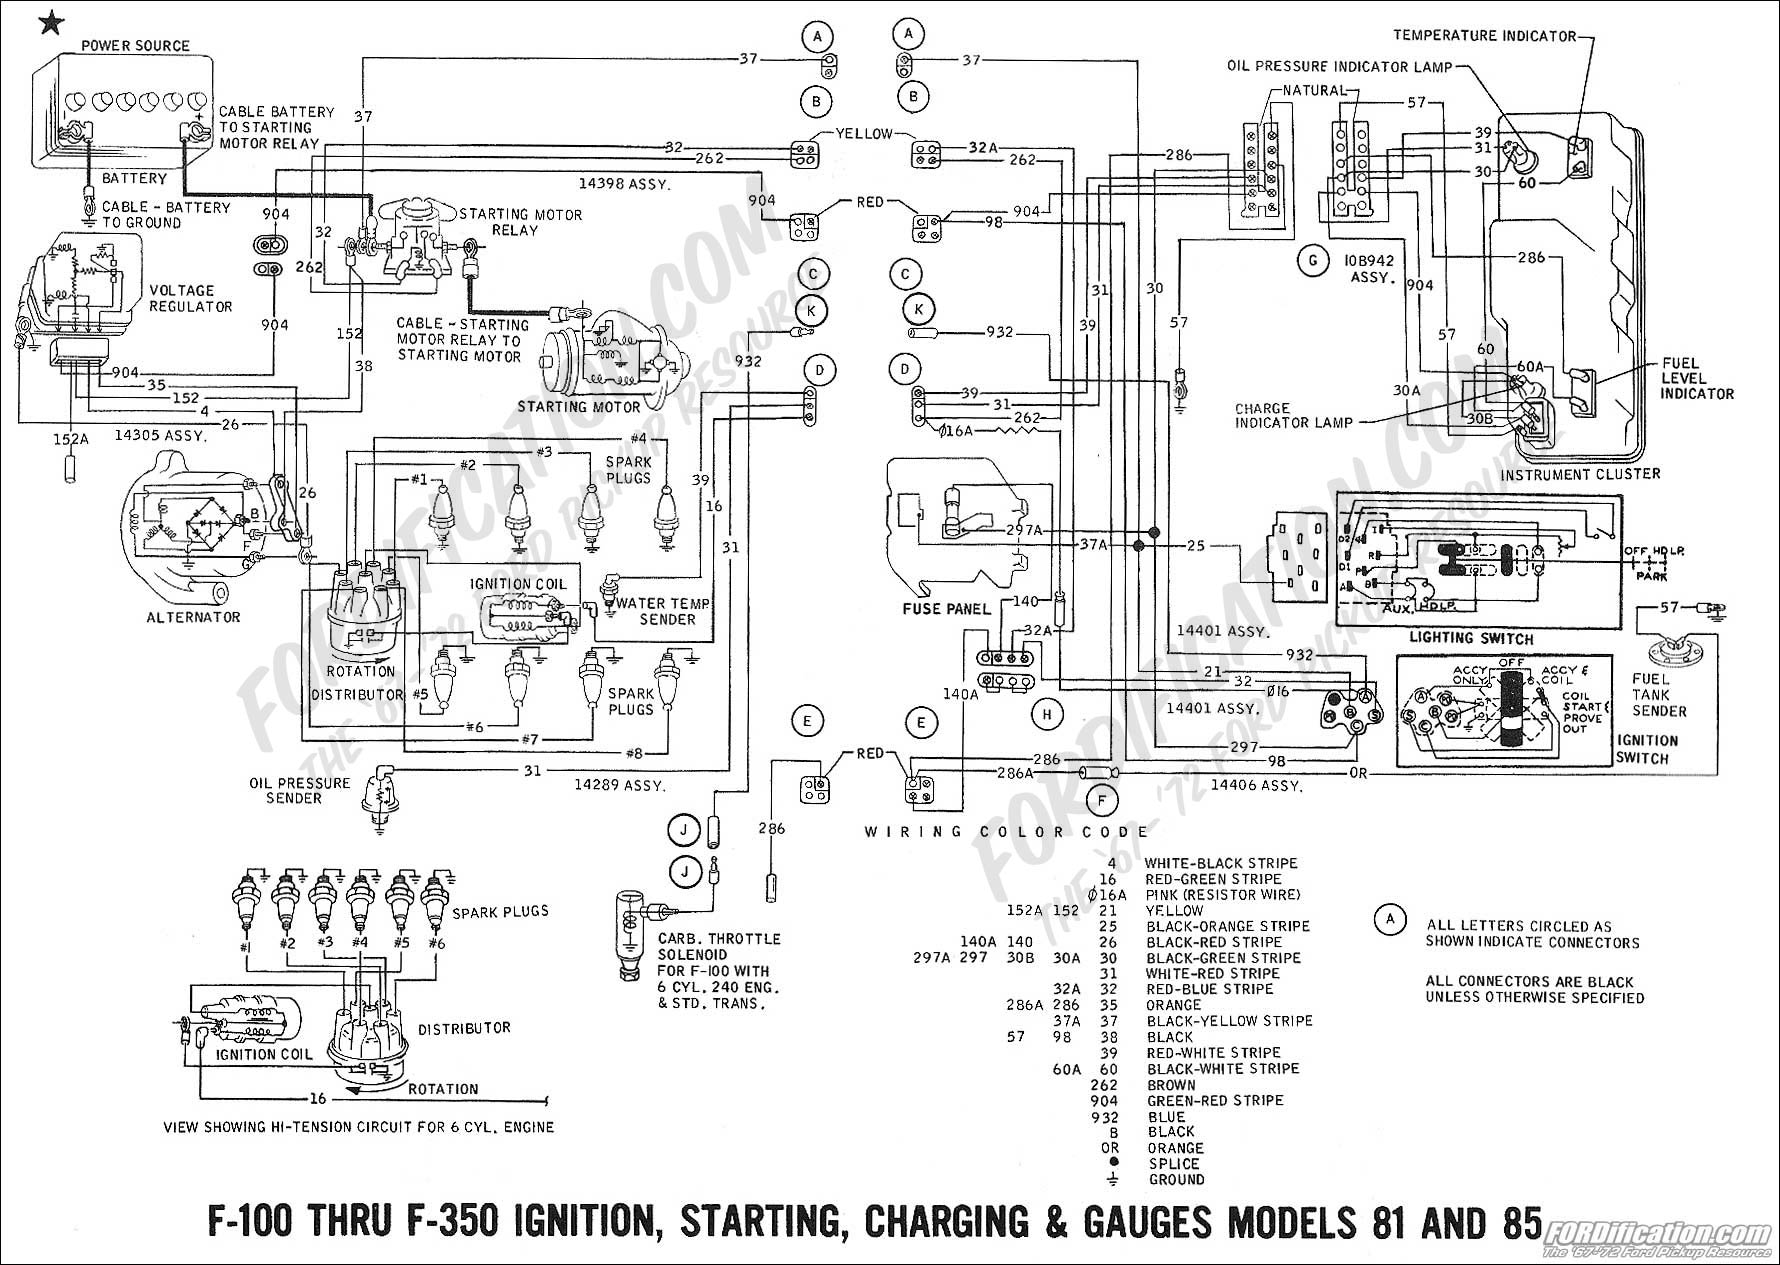 92 Mustang Dash Lights Wiring Diagram | Wiring Library